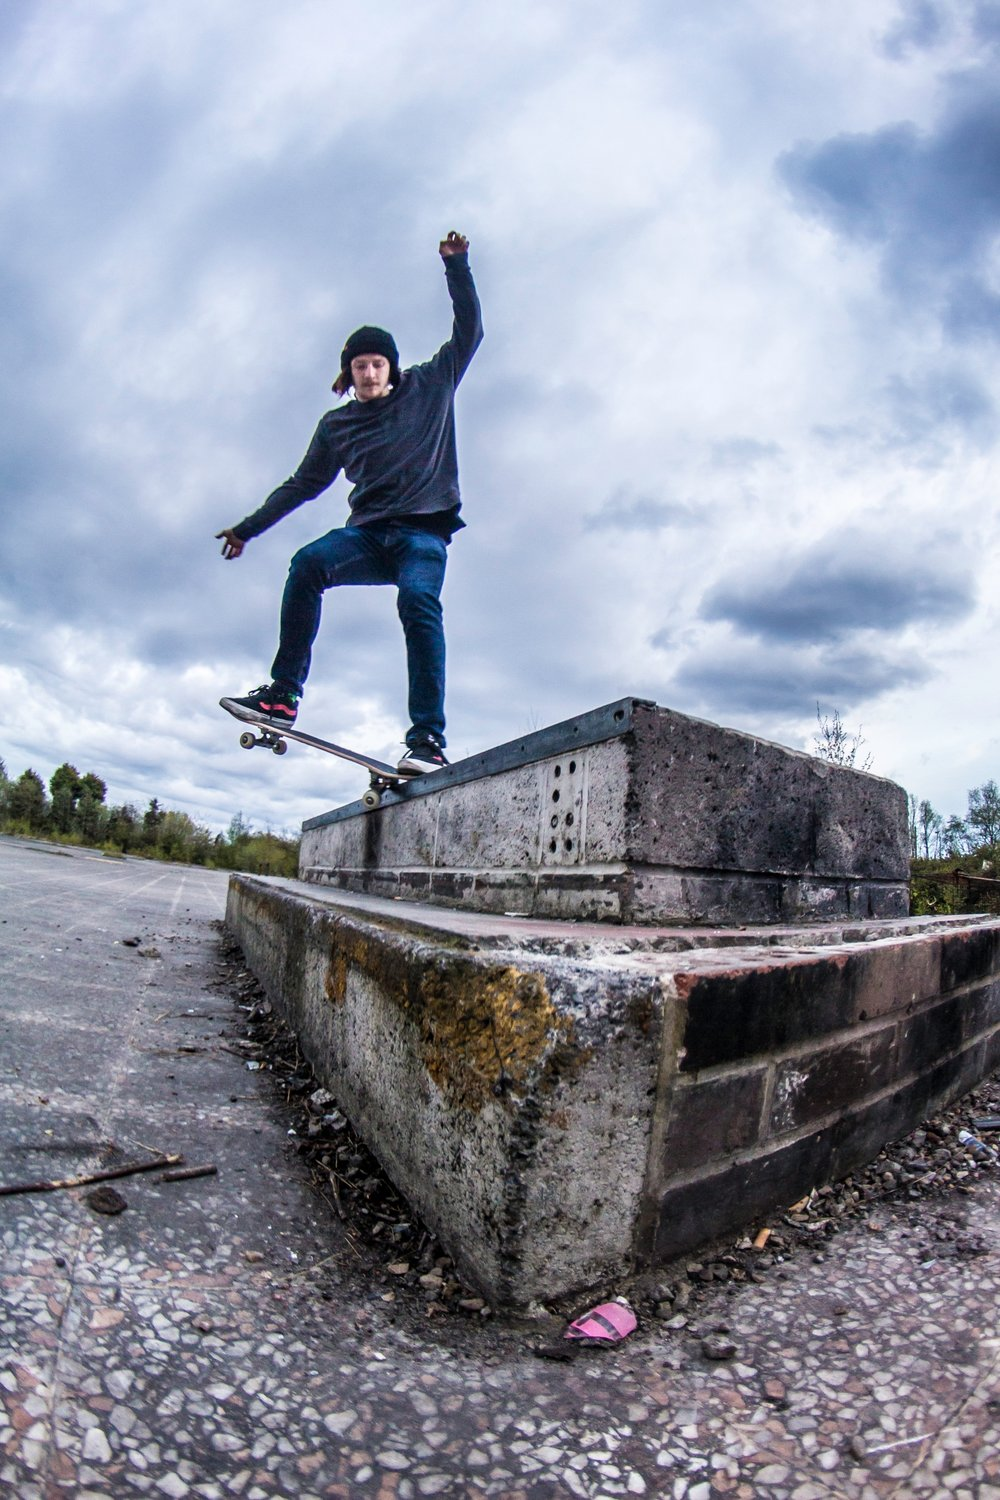 Photo taken by Ryan Welsh of Paul Spurs performing a krooked grind on the ledge in a DIY skatepark in Washington.